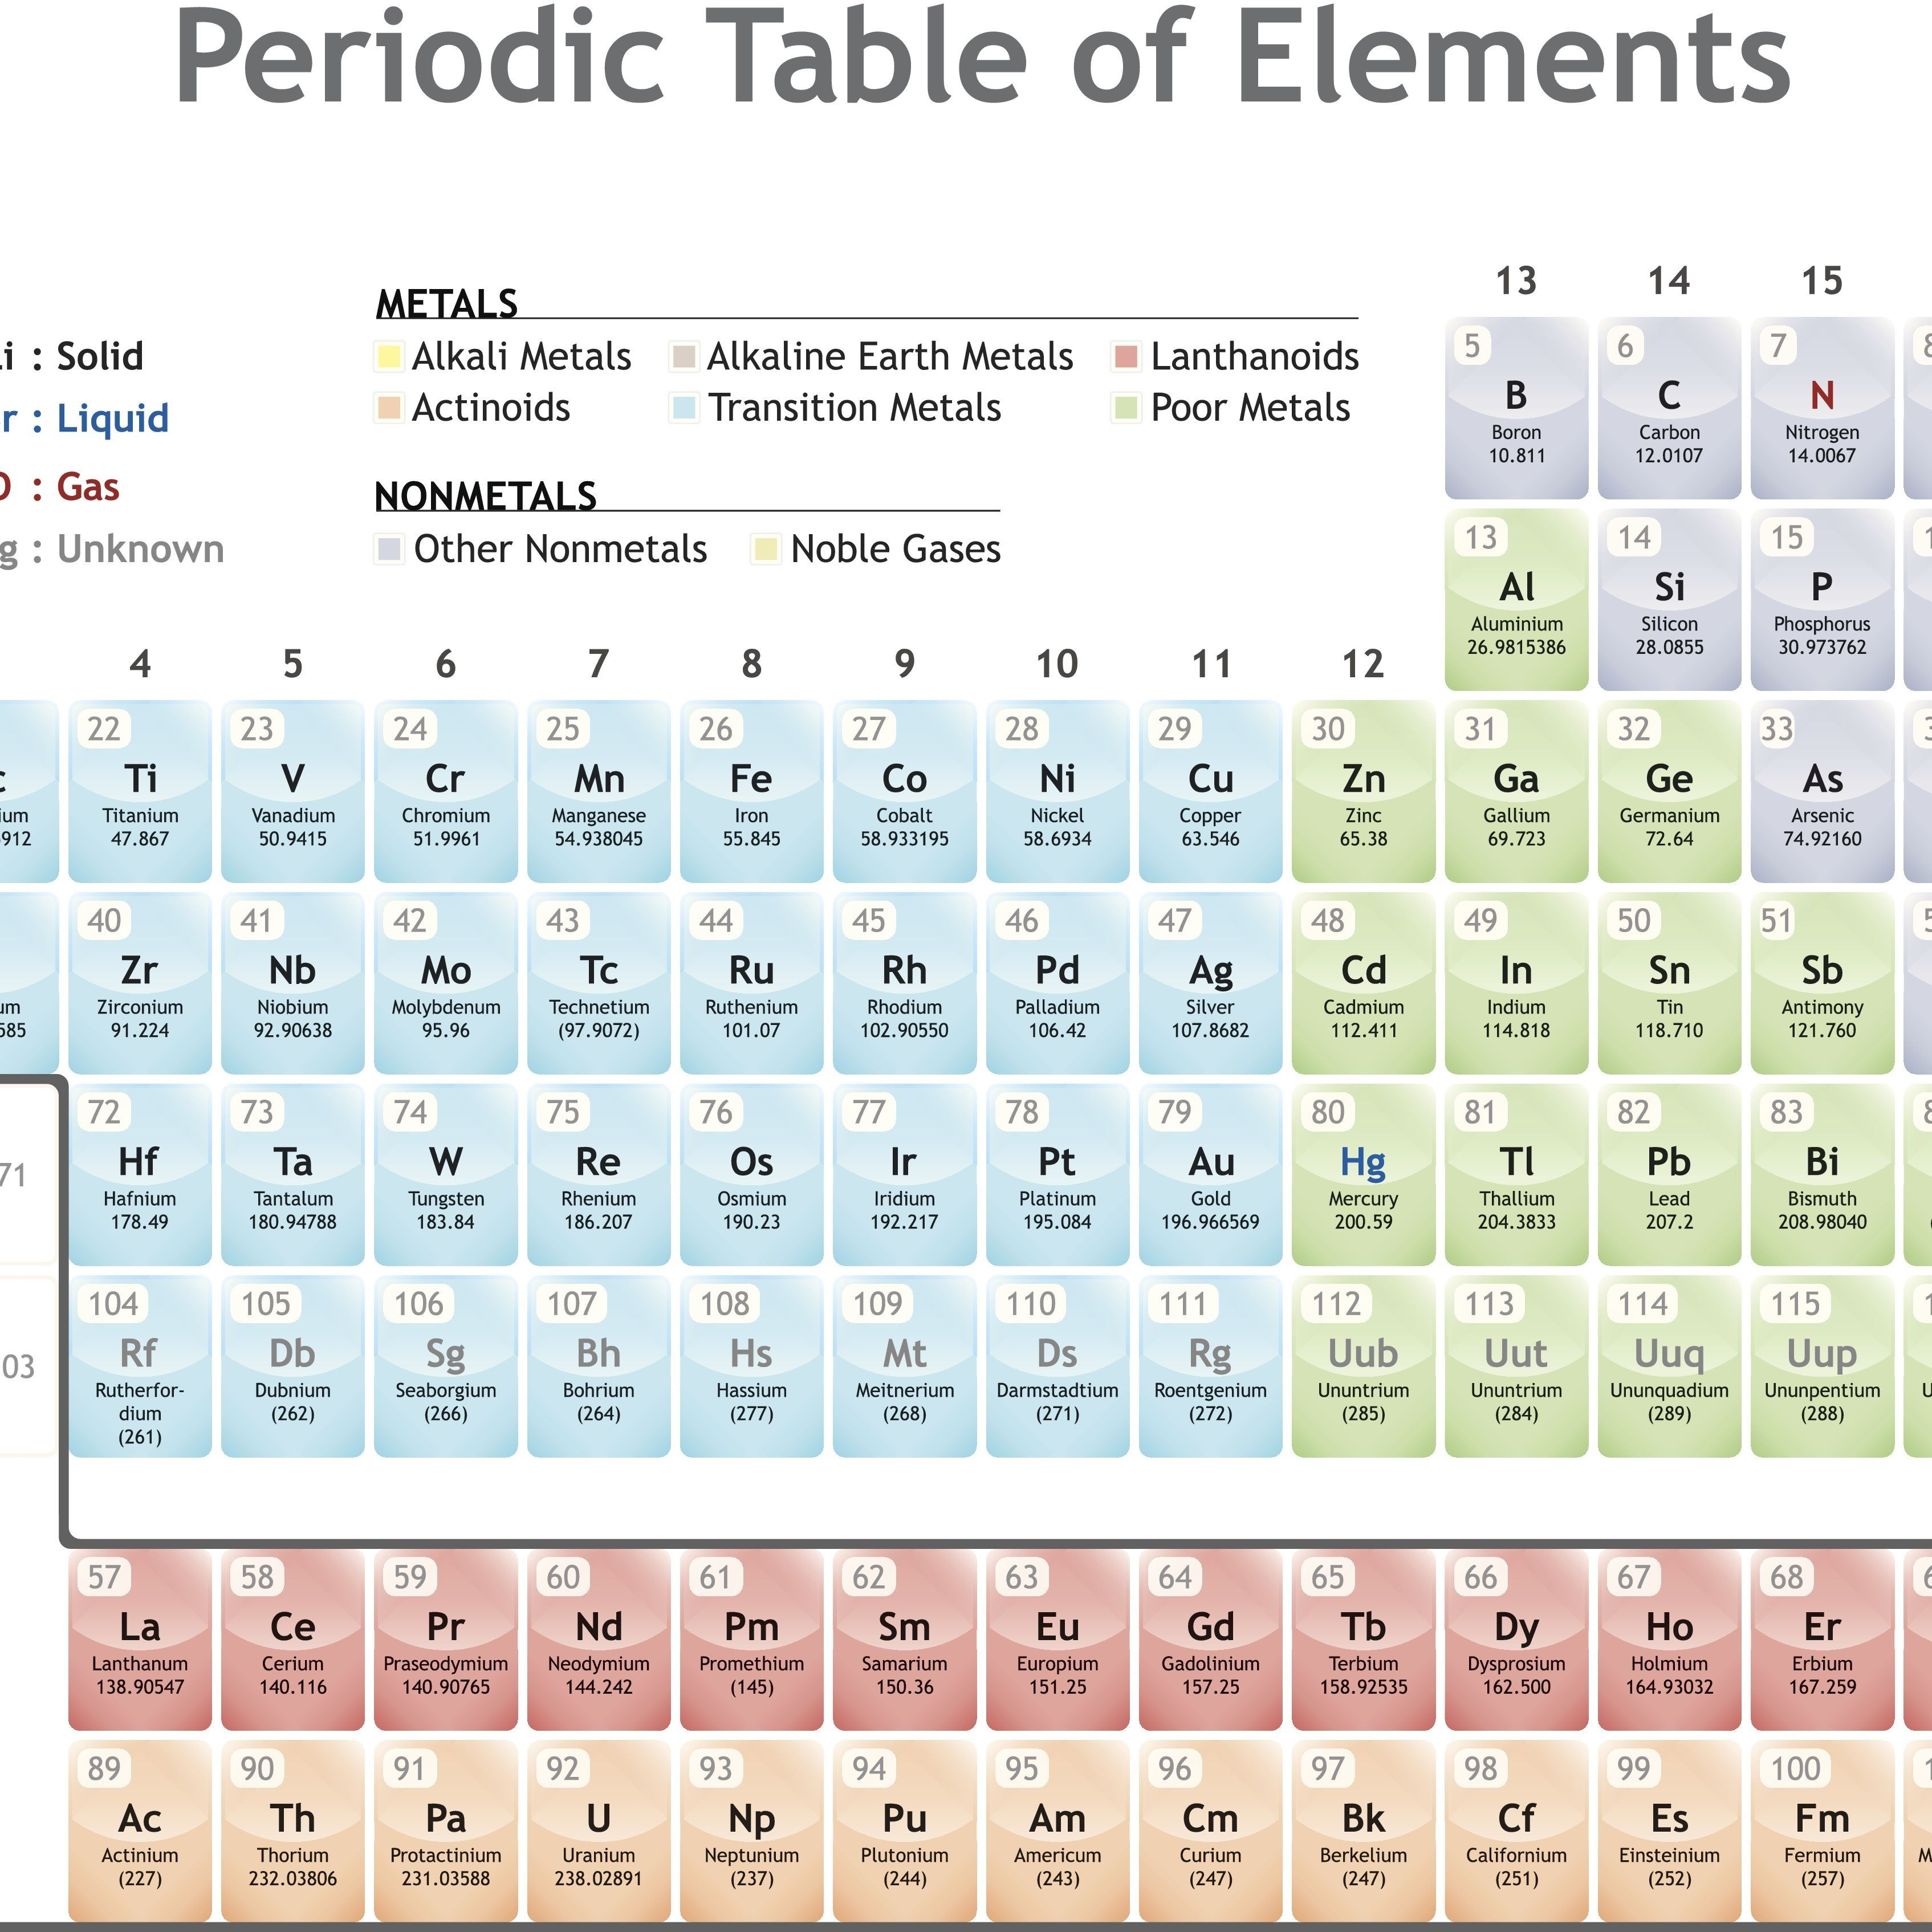 Inspirational Periodic Table Blocks Meaning Tablepriodic